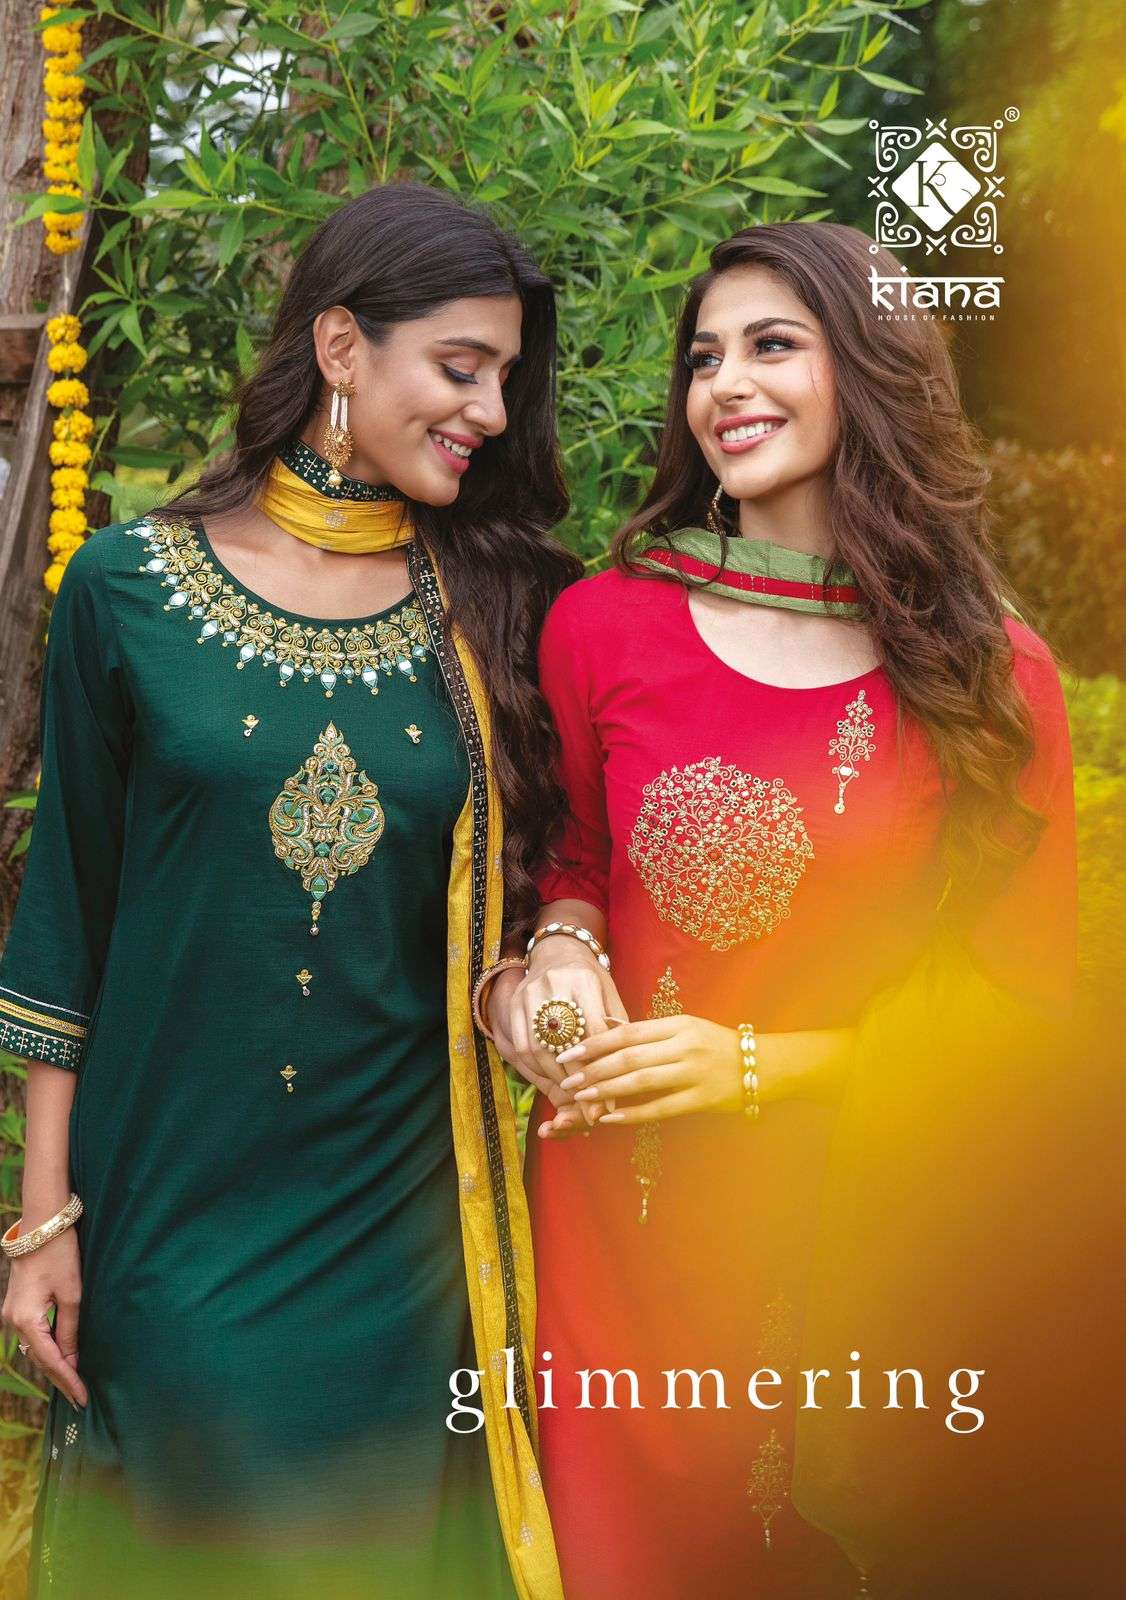 kiana launch glimmering maslin work fully stitch fancy readymade suits